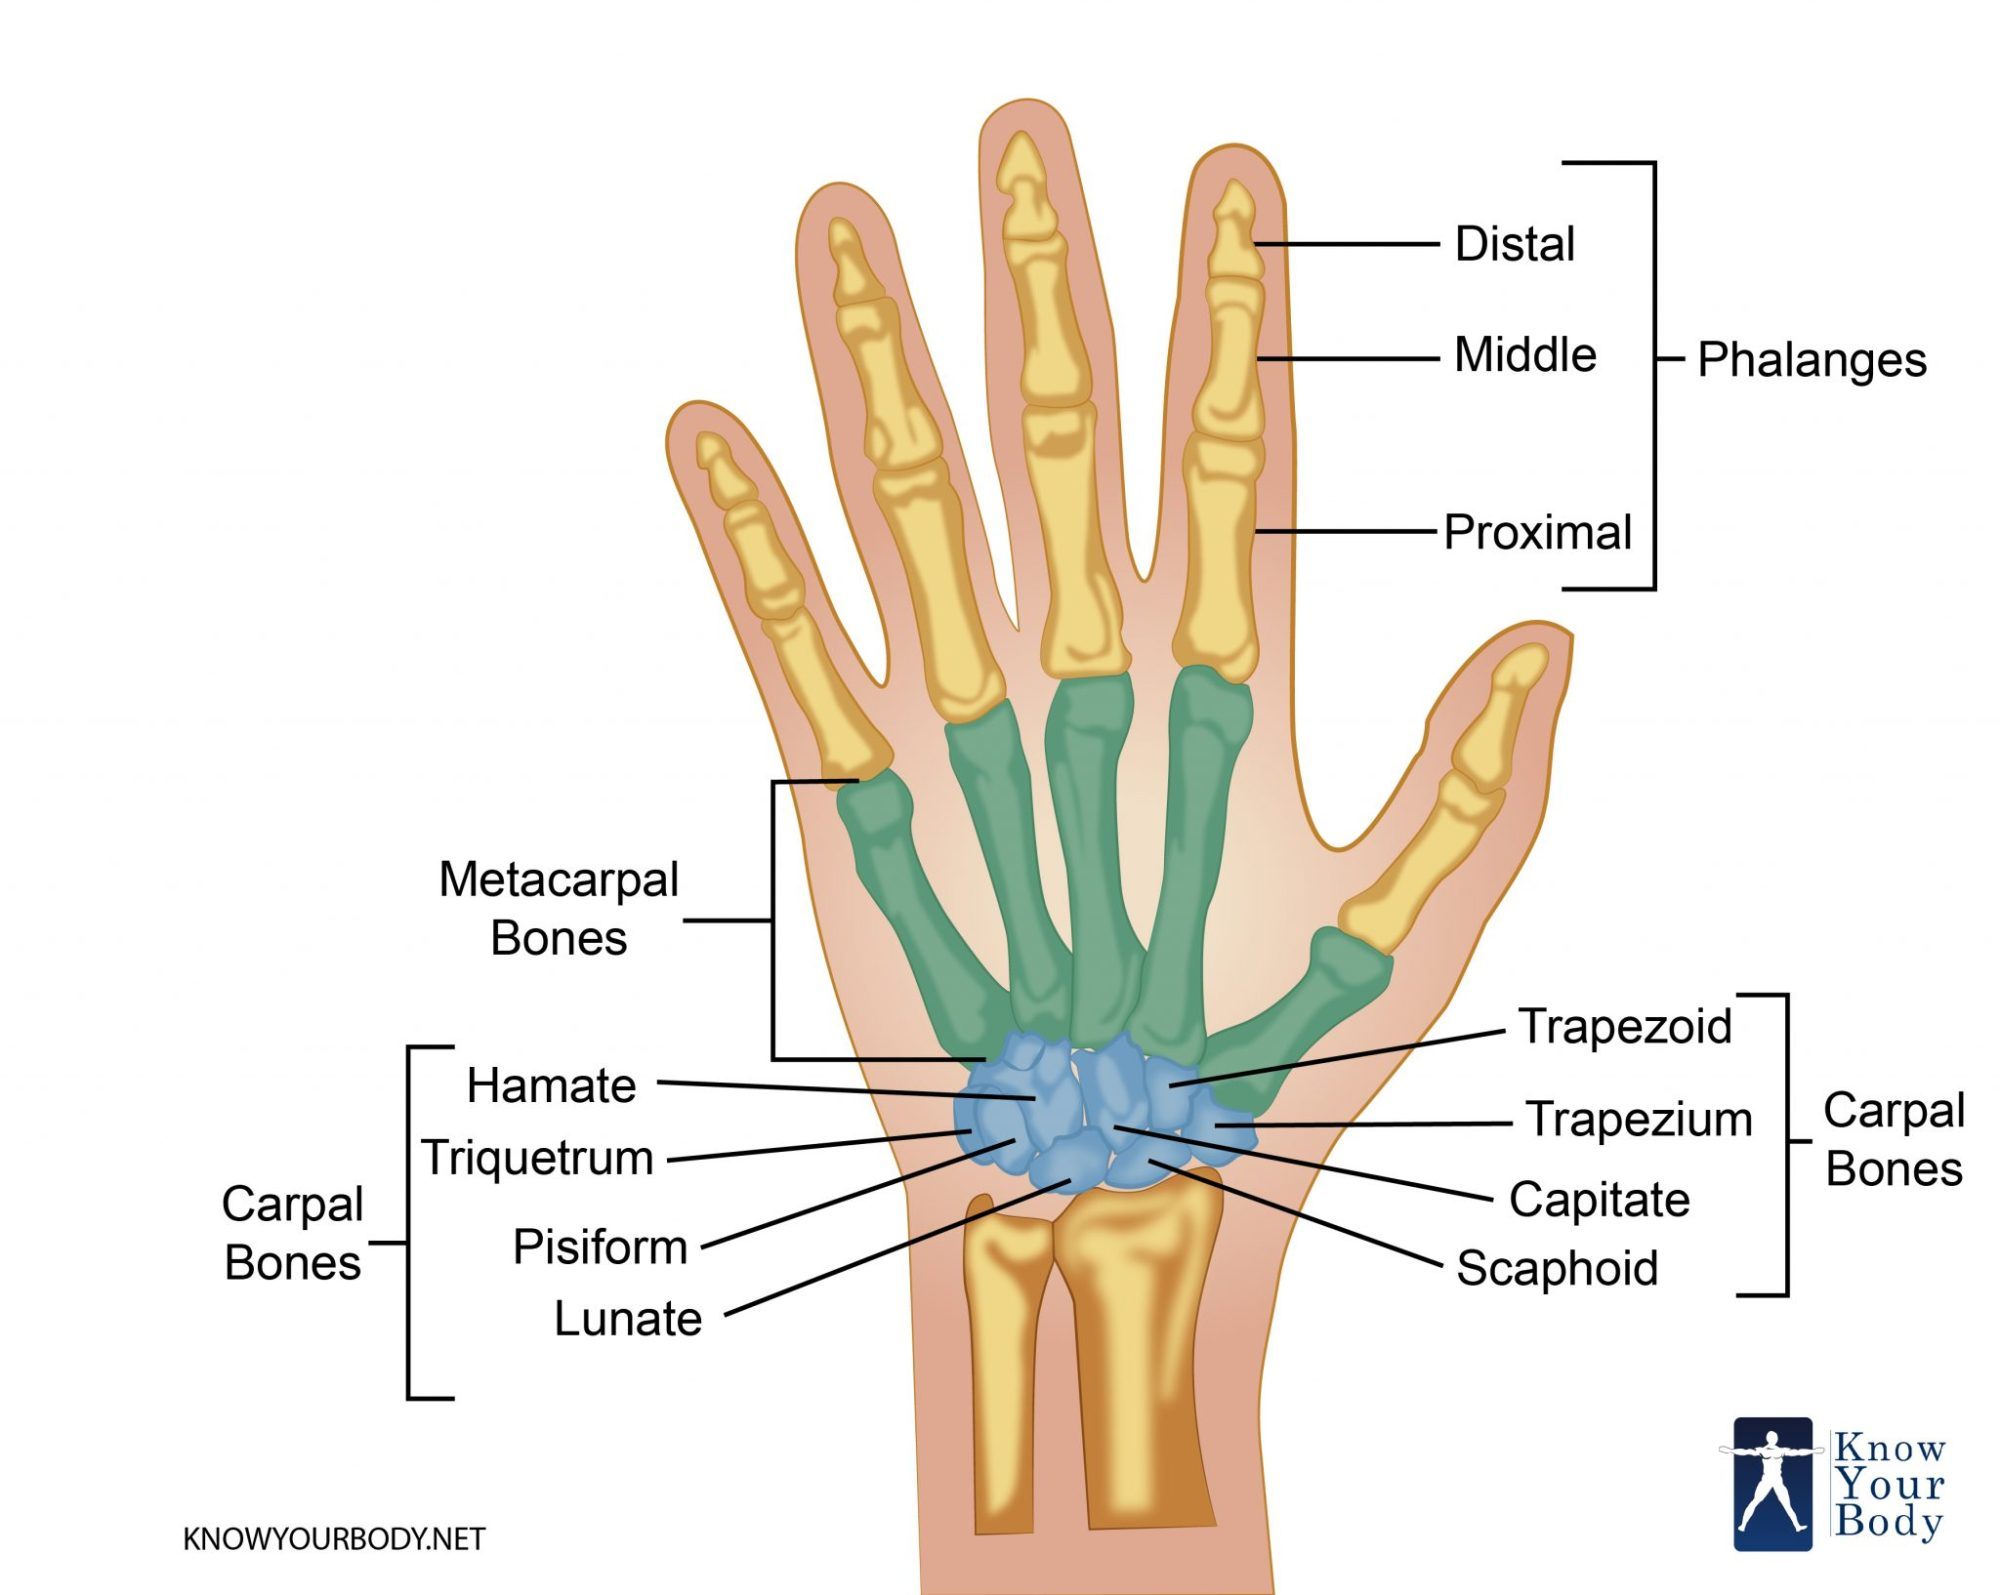 hight resolution of hand bones anatomy structure and diagram back bones diagram finger bones diagram